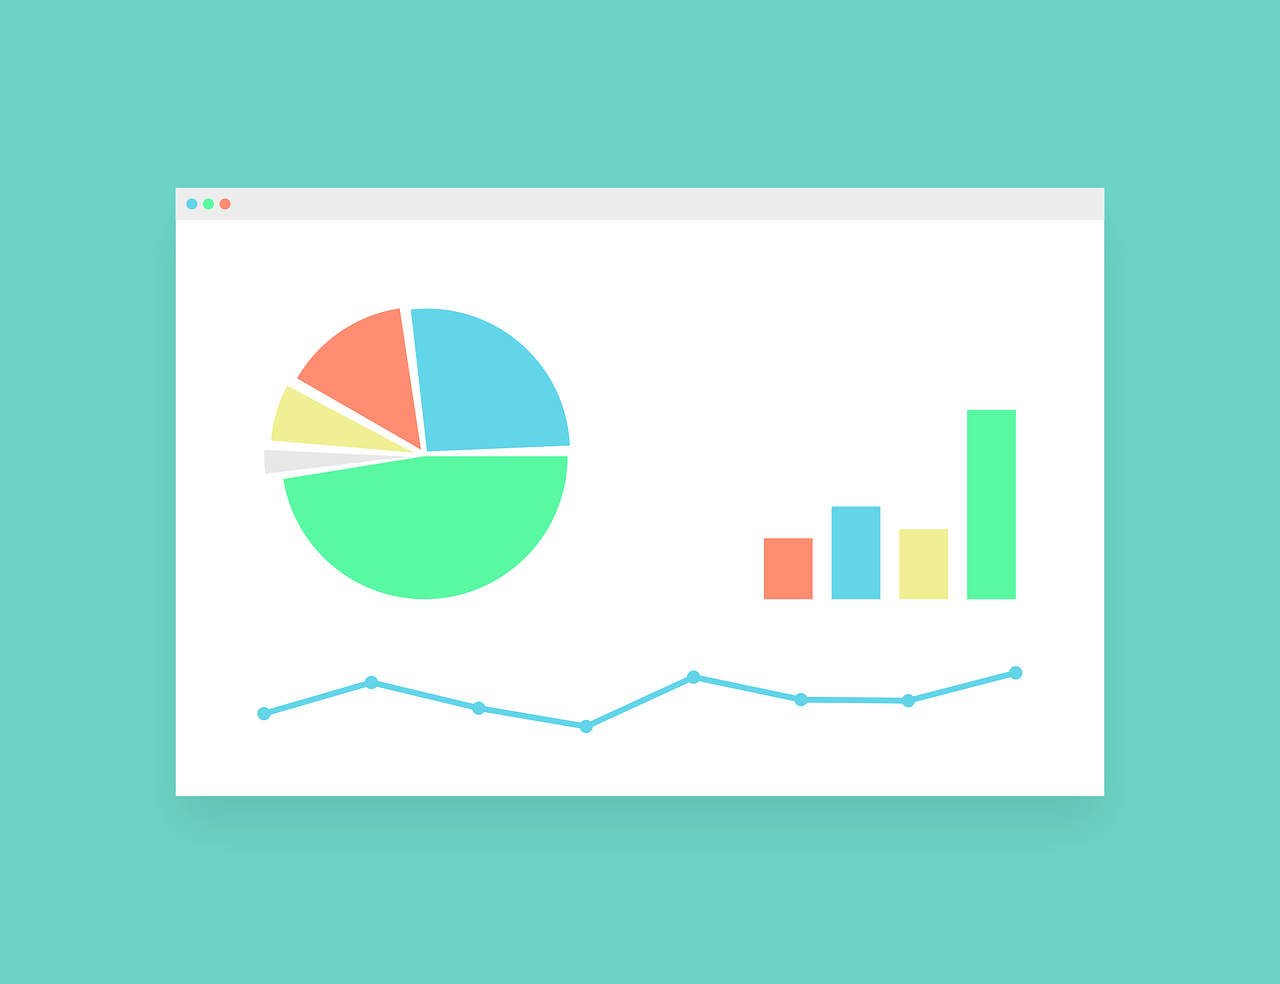 Pie Chart, Bar Graph, and Line Graph Graphic